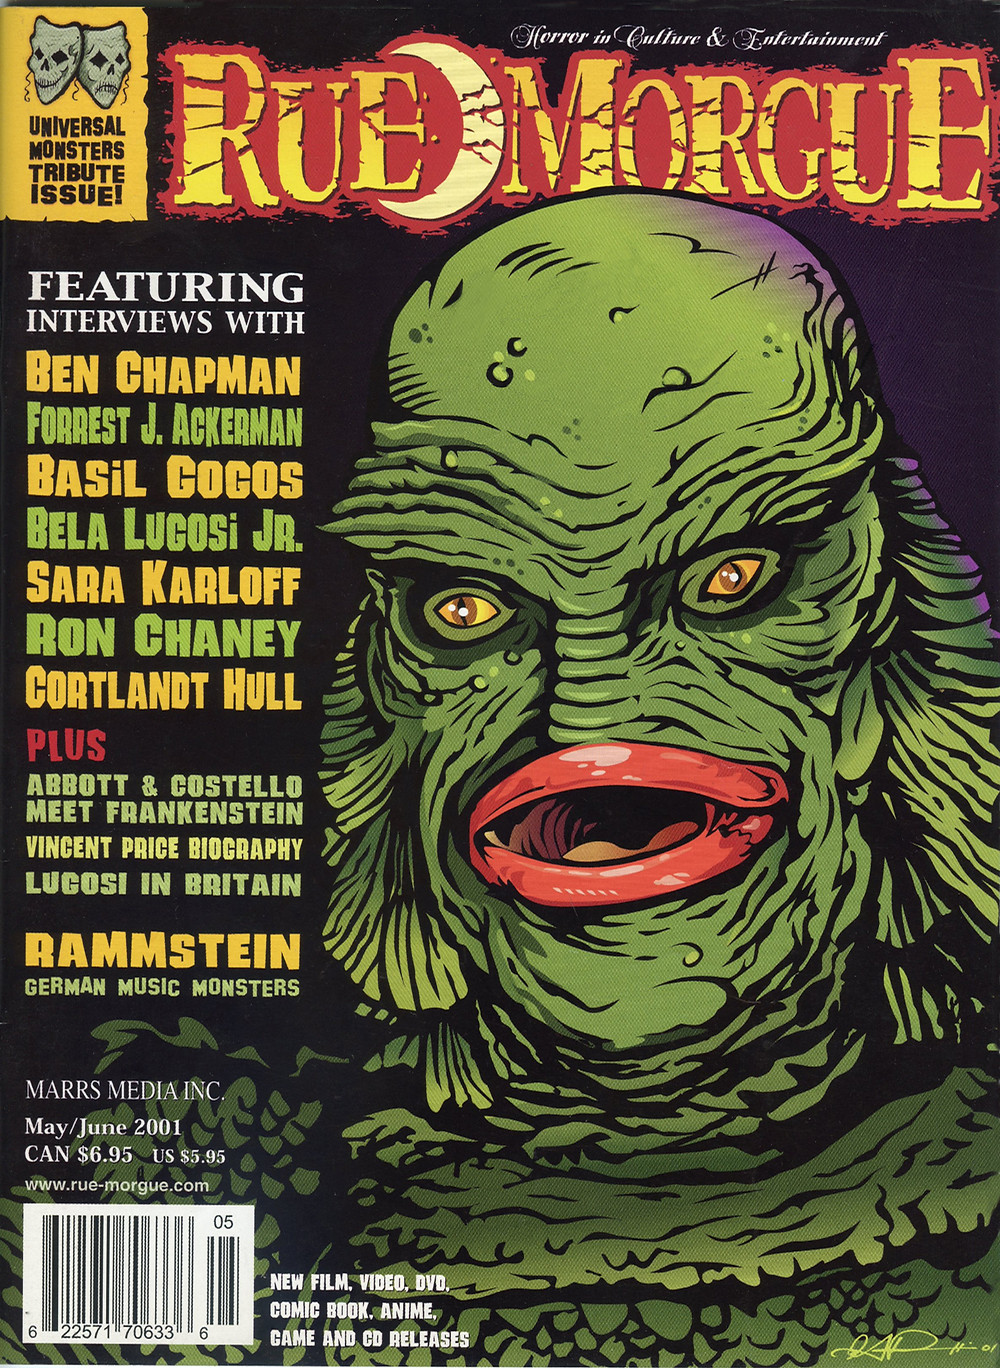 Rue Morgue Issue #21 by Gary Pullin (Copyright Marrs Media Inc.)